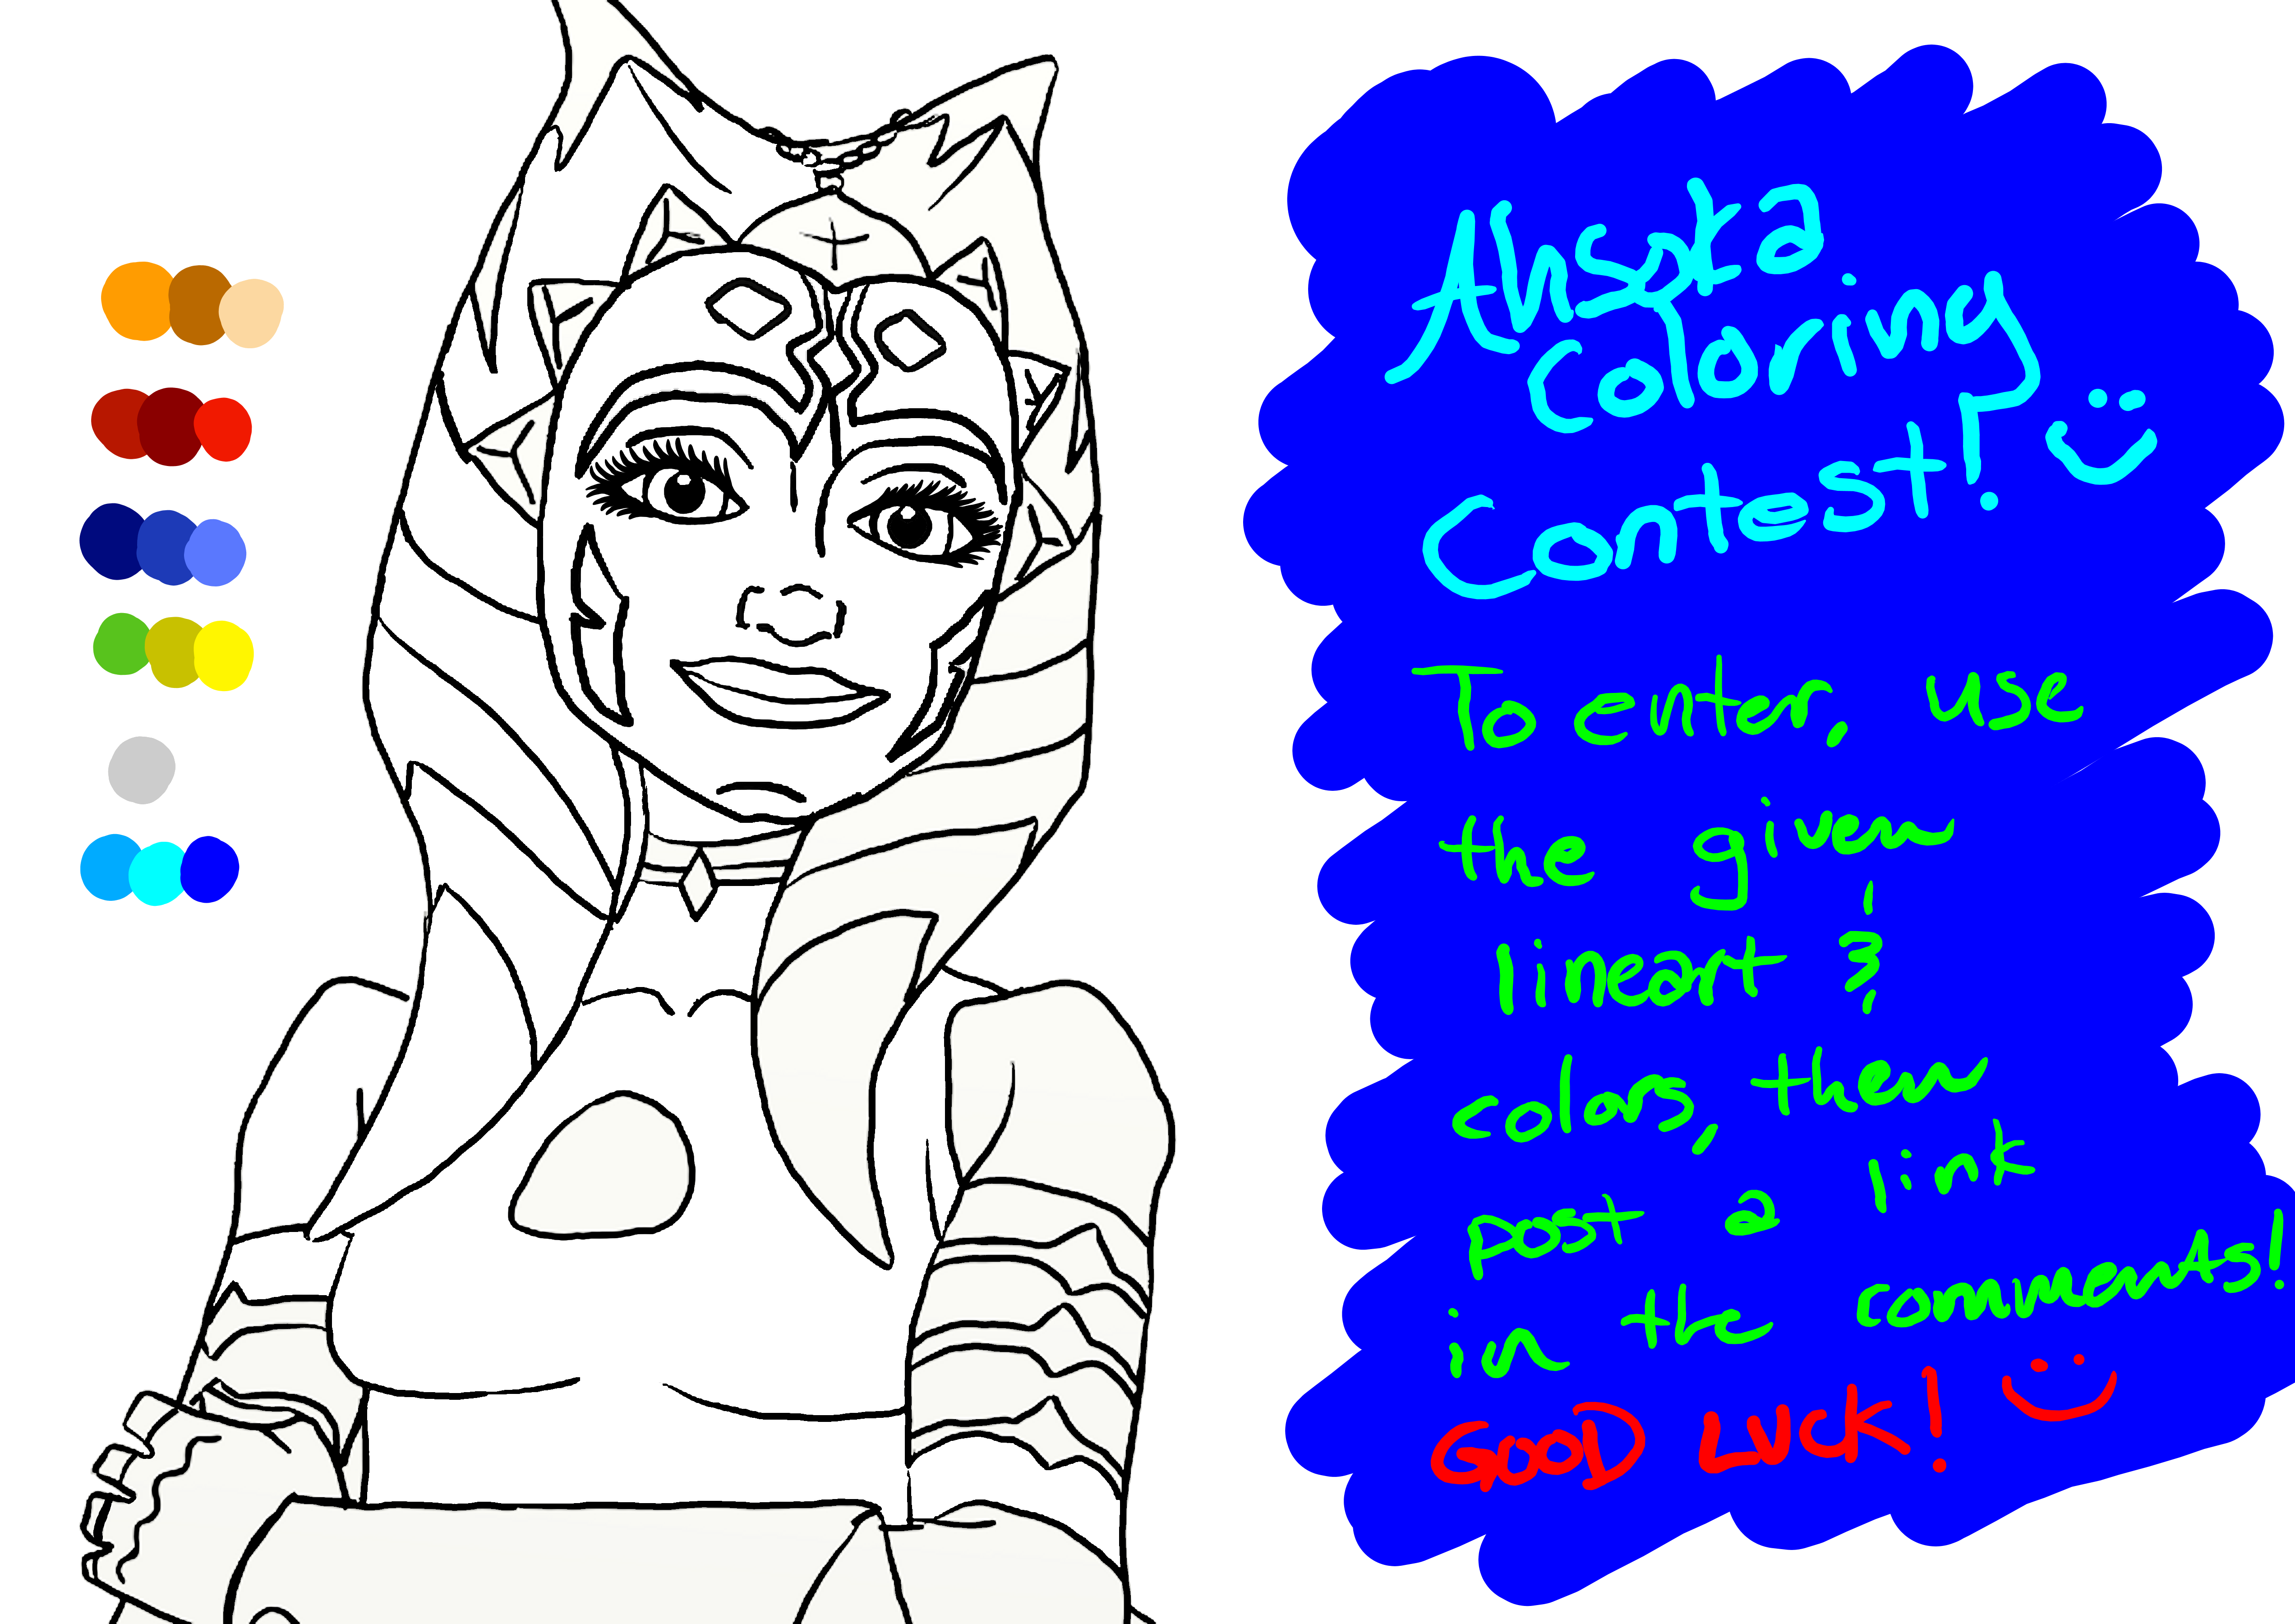 ahsoka coloring contest lineart by chrisily on deviantart